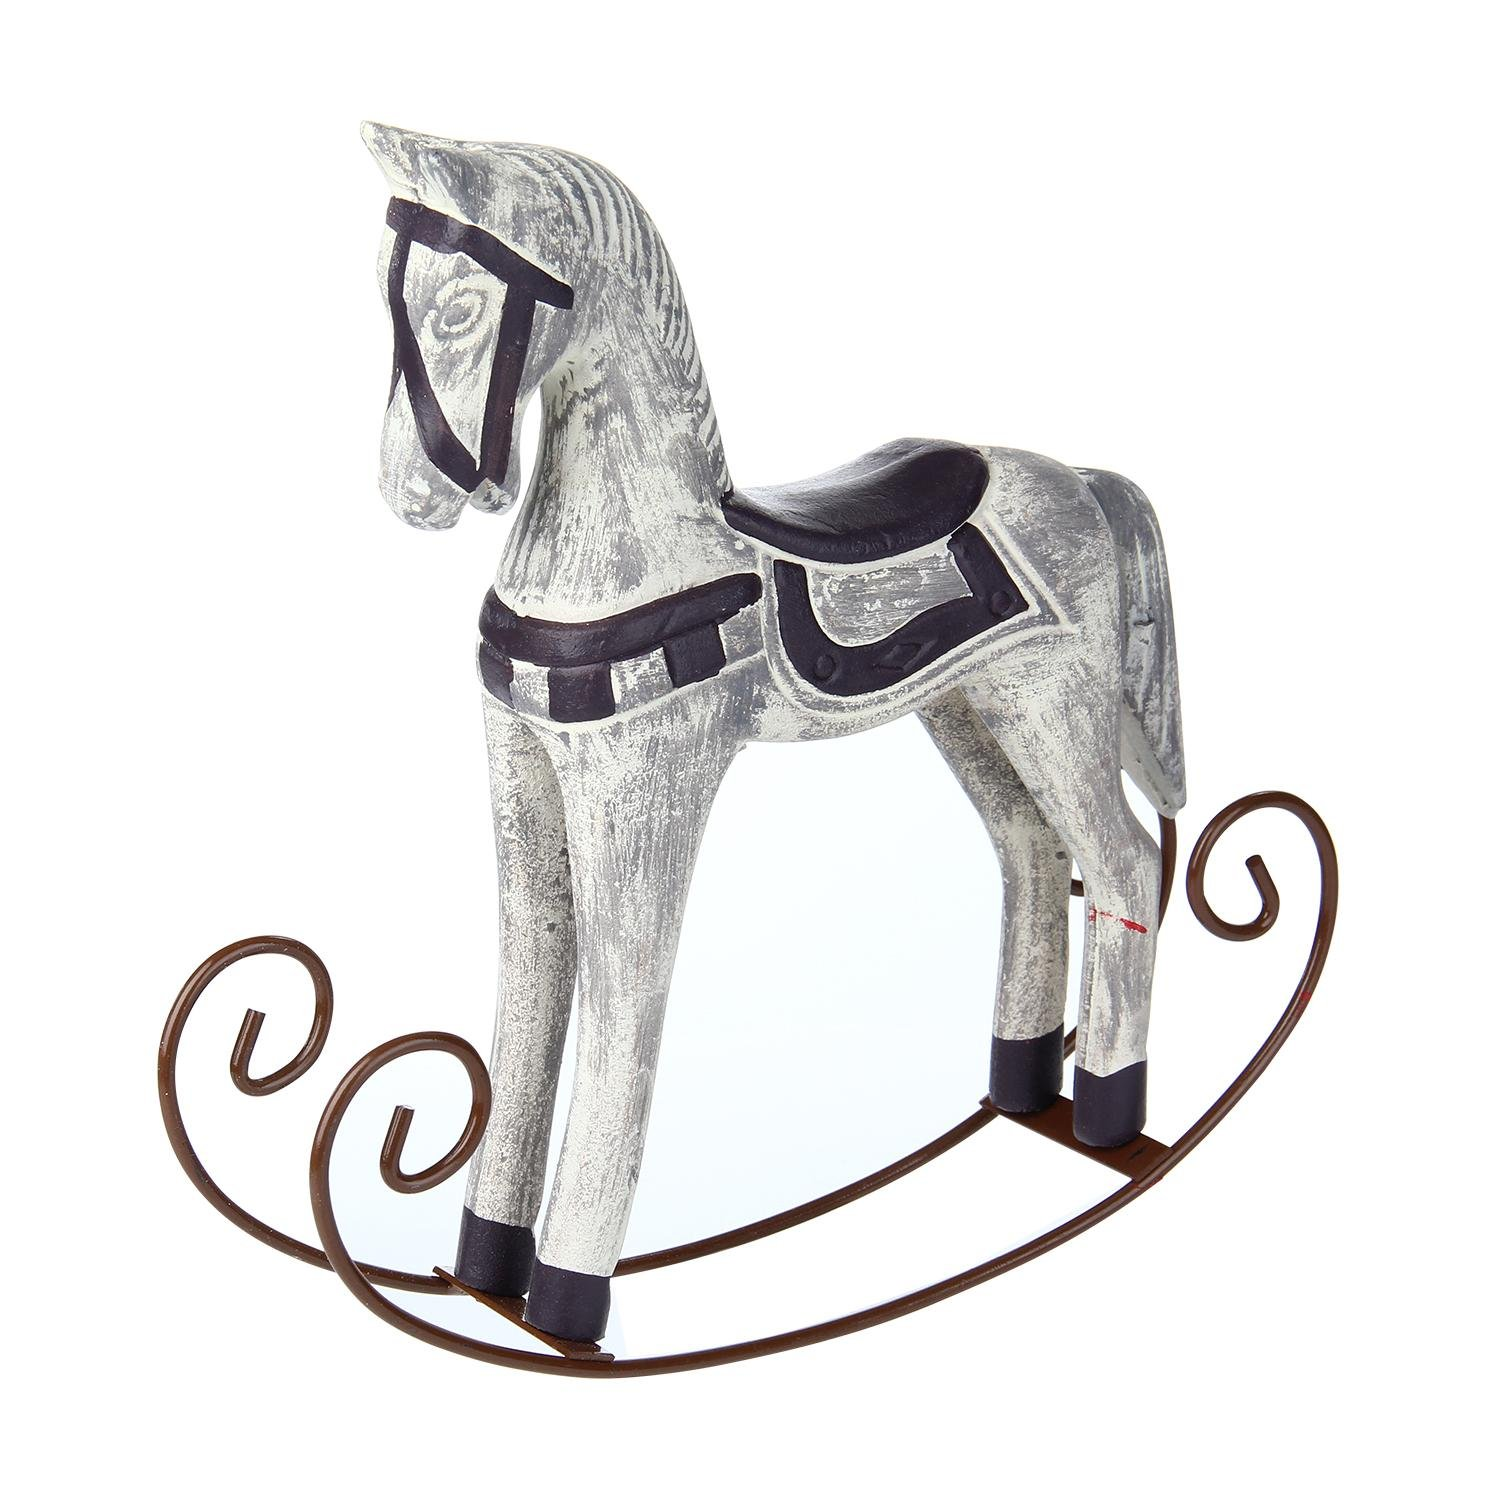 Pawaca Rocking Horse Statue Mediterranean Style Elegant Noble Wood Horse Sculpture Crafts for Home Office Table Decoration Ornaments Gifts